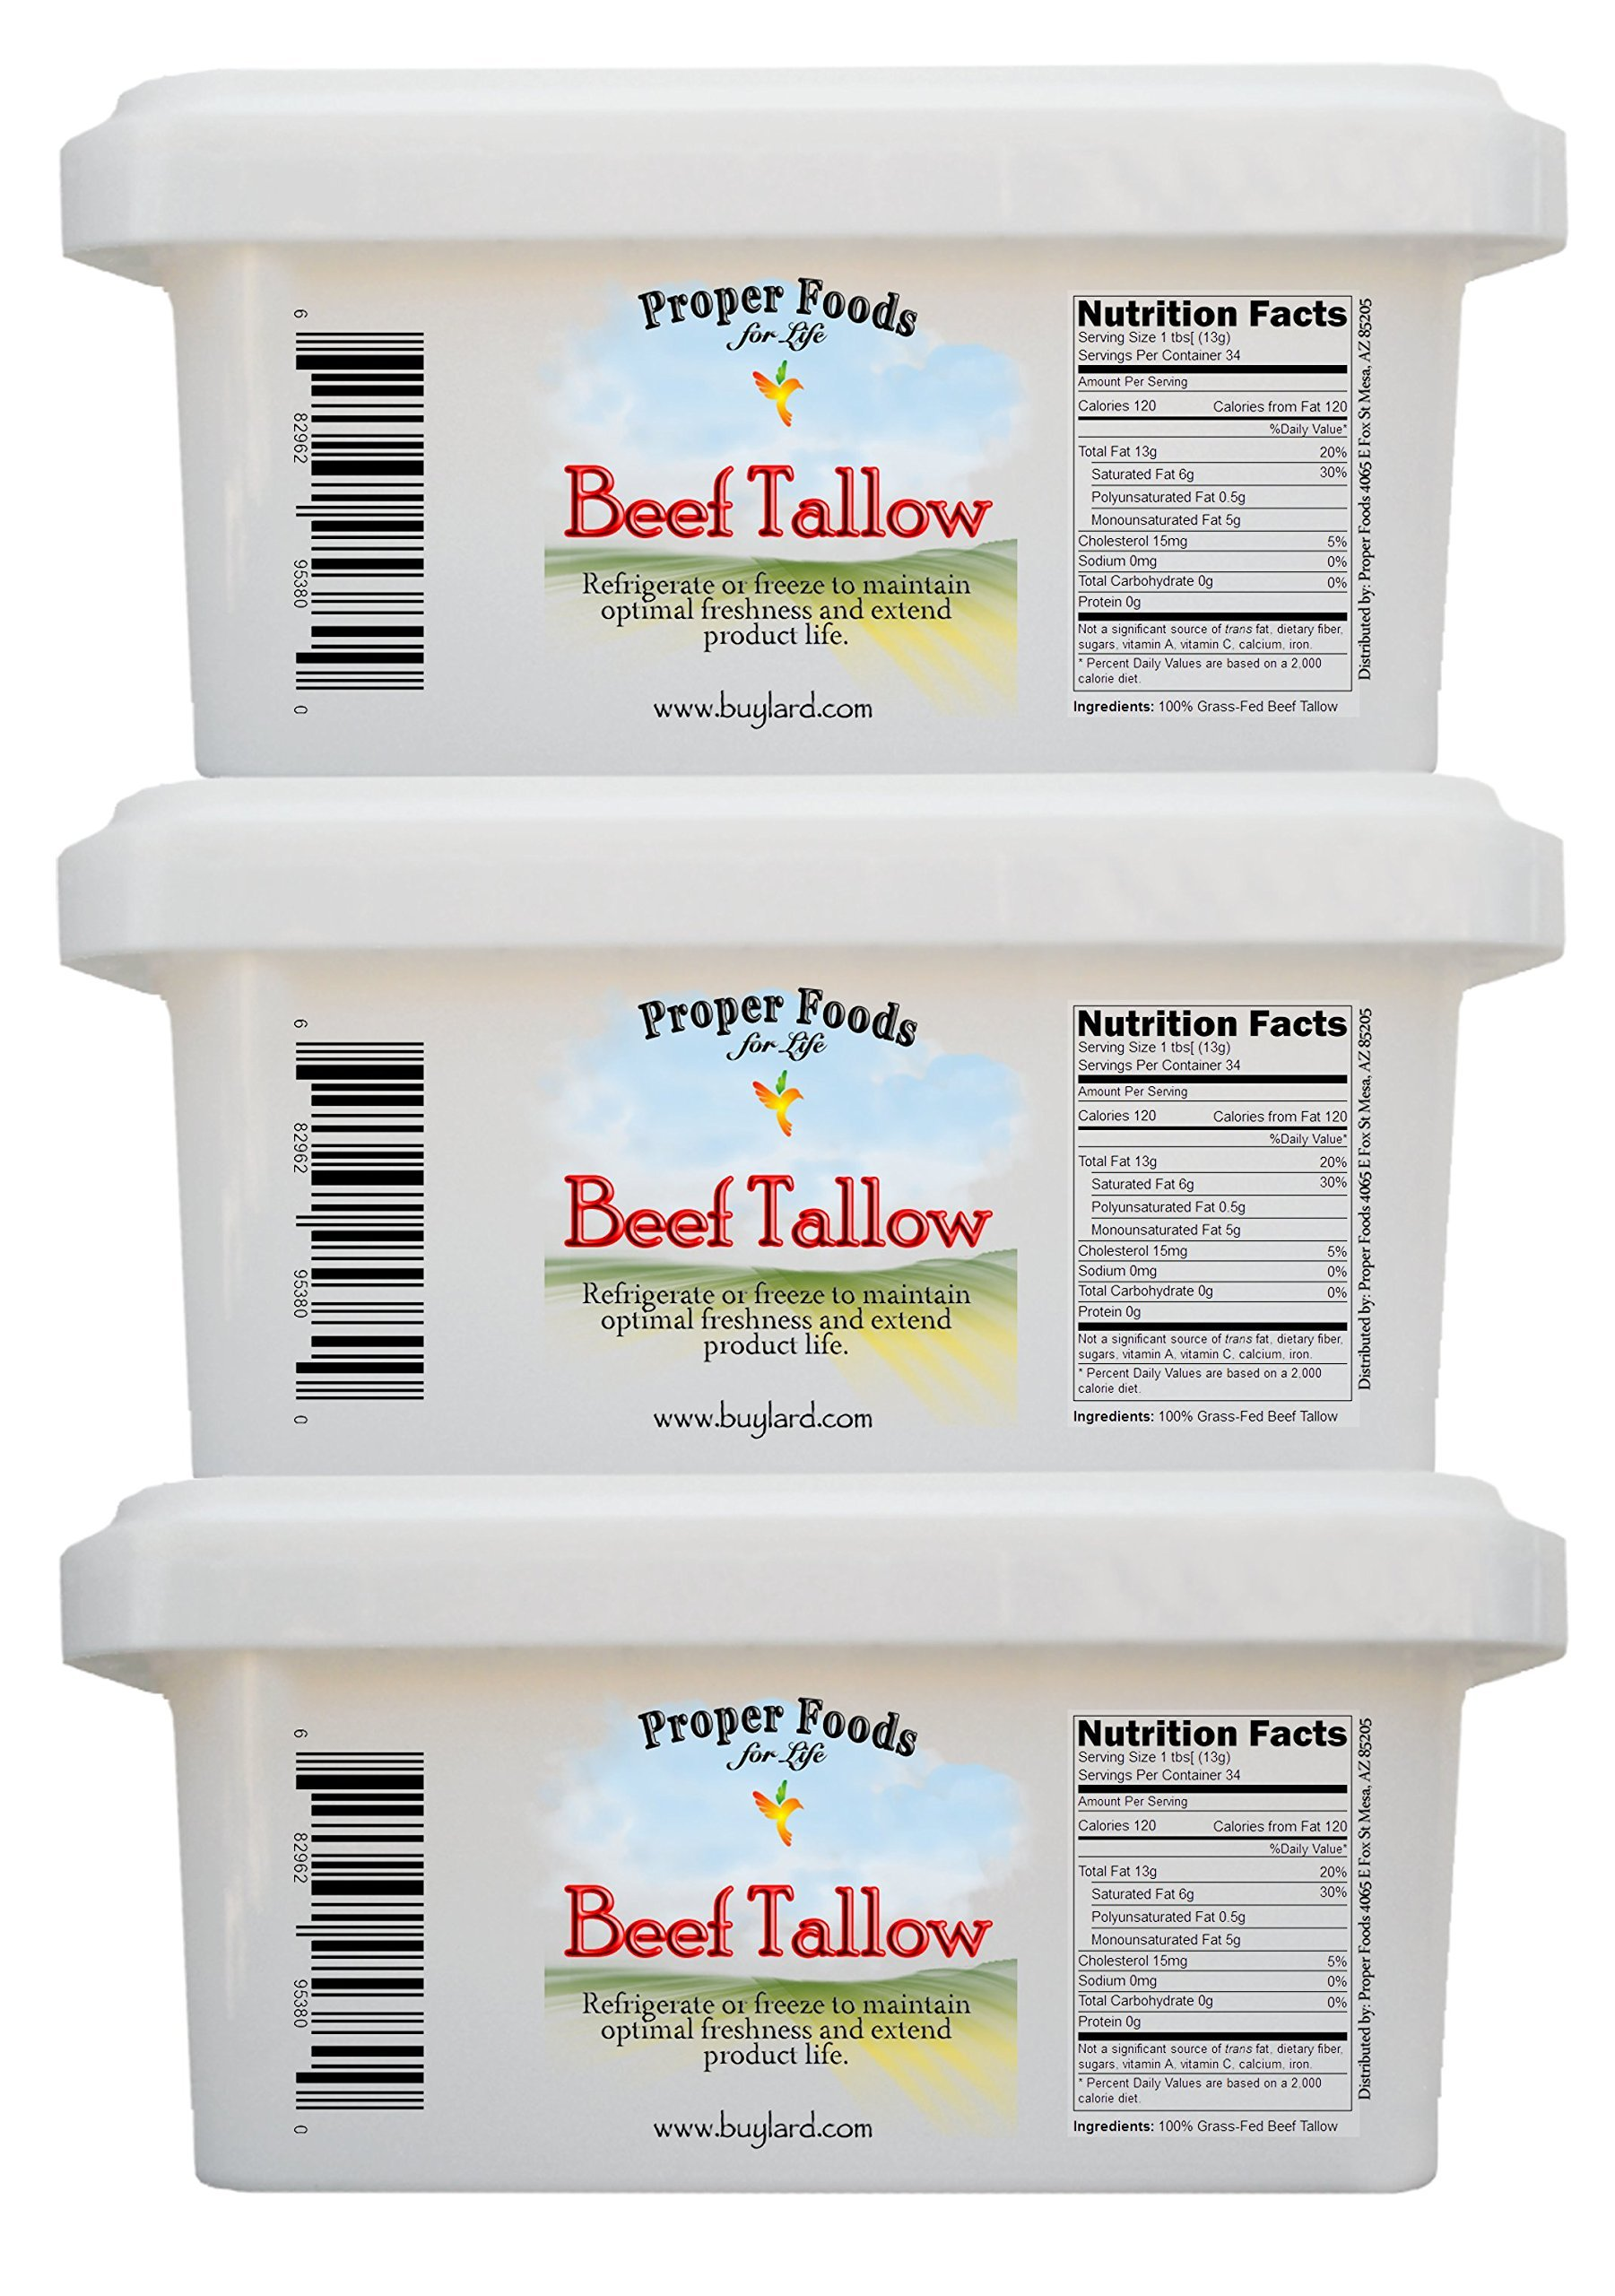 Proper Foods 100% Grass-Fed Beef Tallow, Cooking & Baking, 16 oz (Pack of 3) by Proper Foods For Life (Image #3)